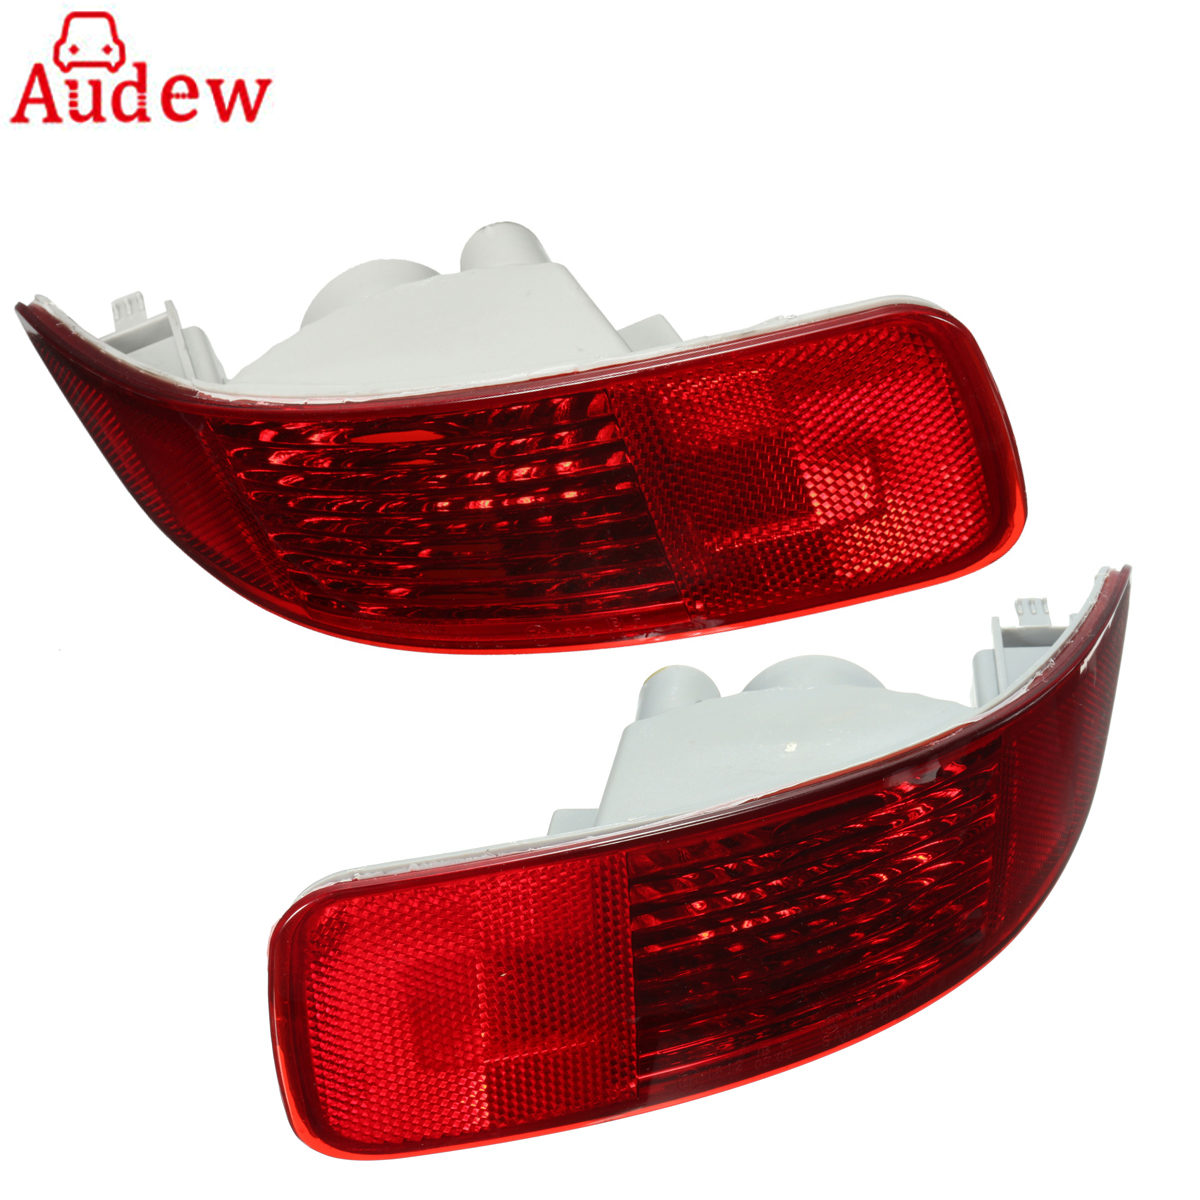 1Pcs Car Rear Tail Fog Light Warning Lamp Right/Left For Mitsubish Outlander for Peugeot for Citroen 07-12